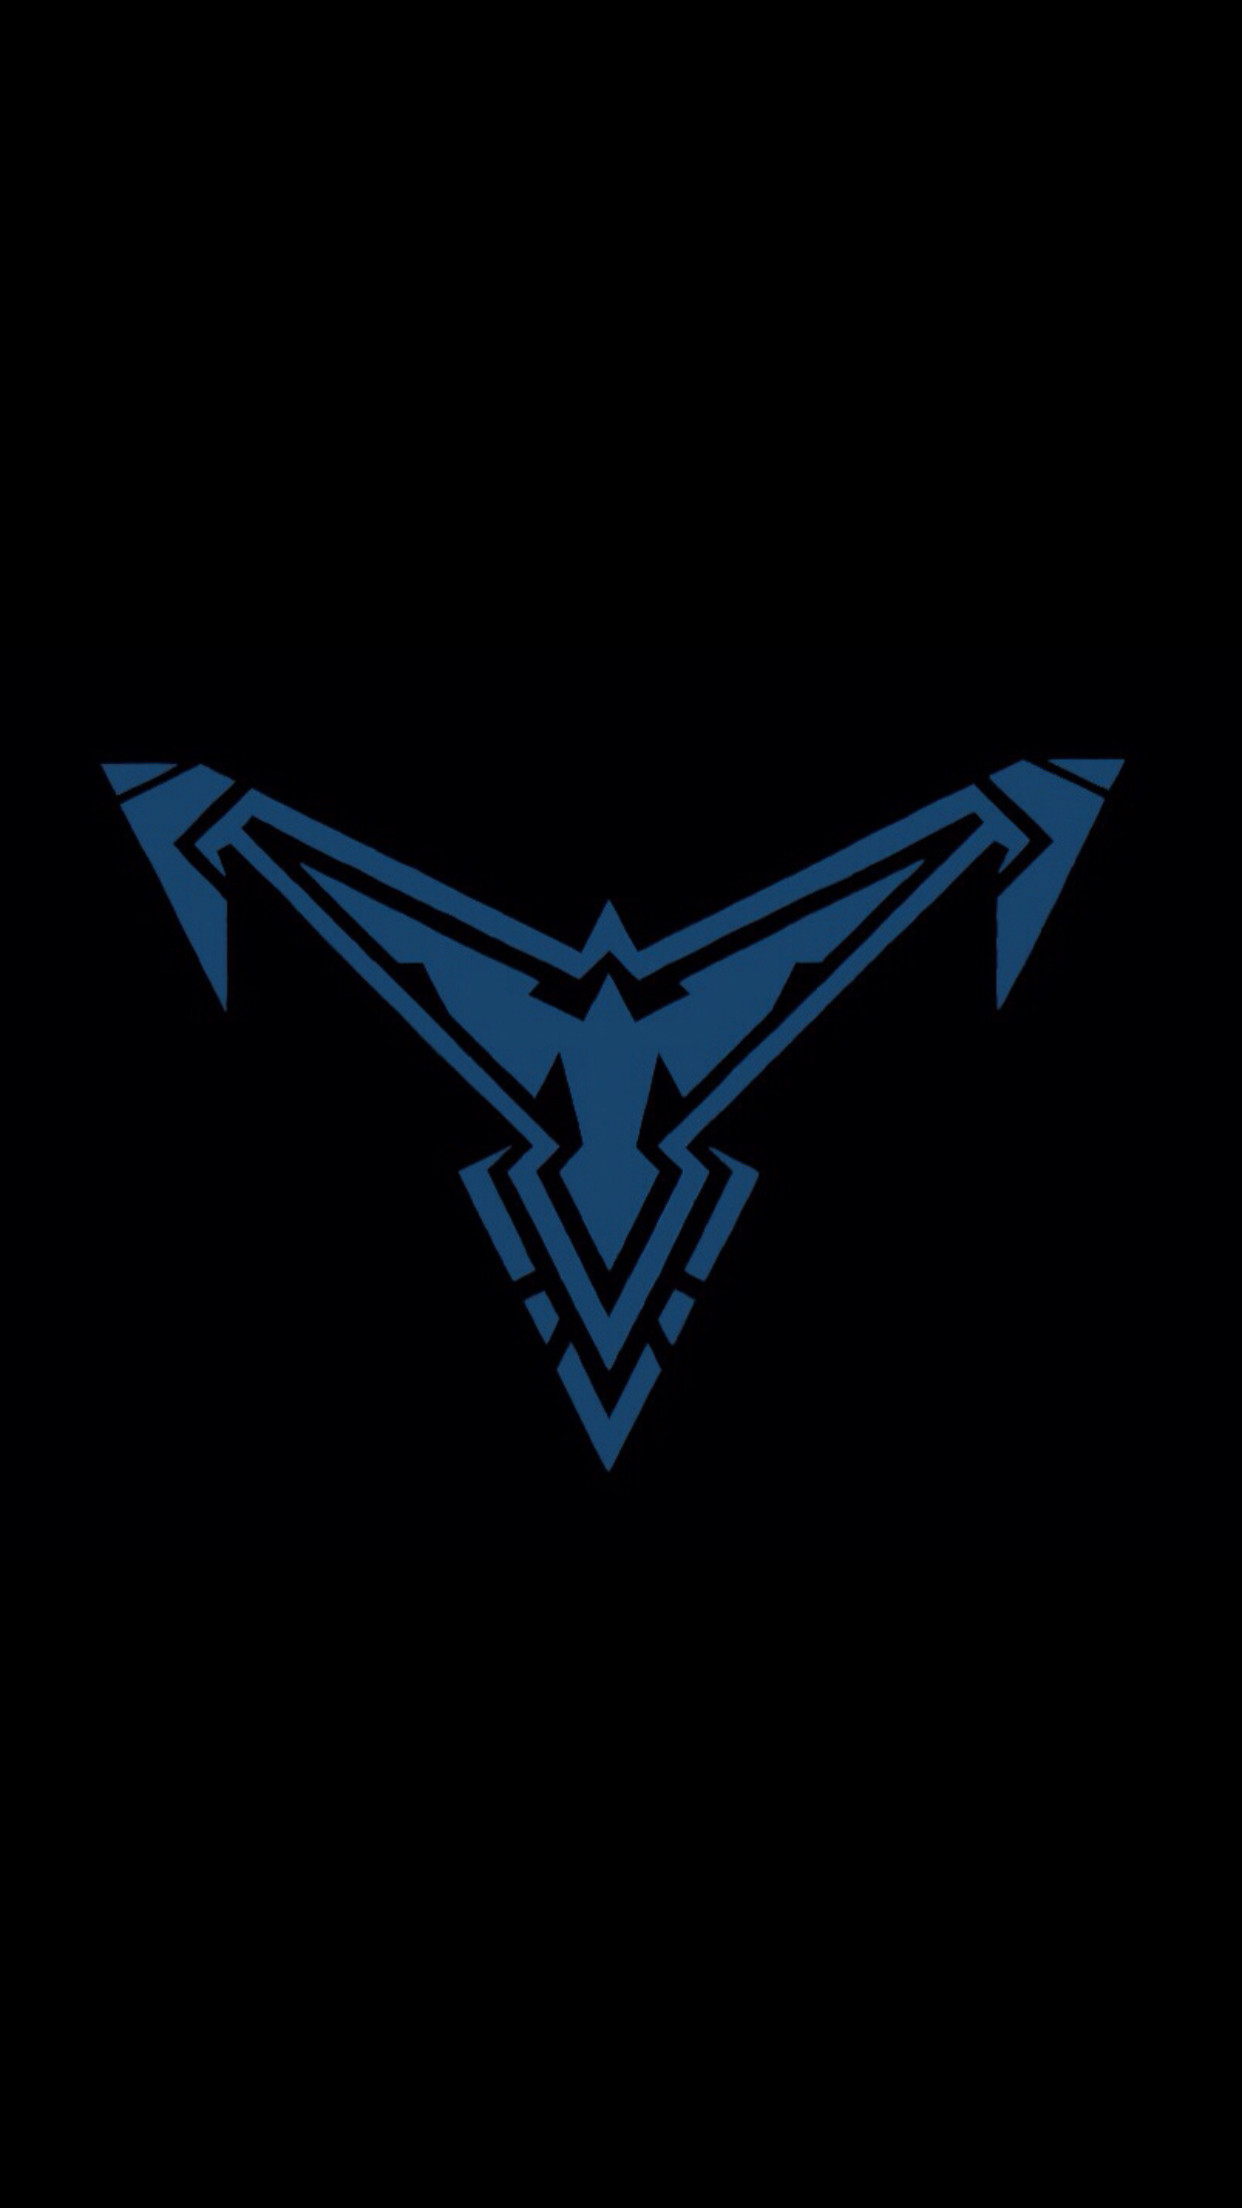 nightwing logo wallpaper 79 images